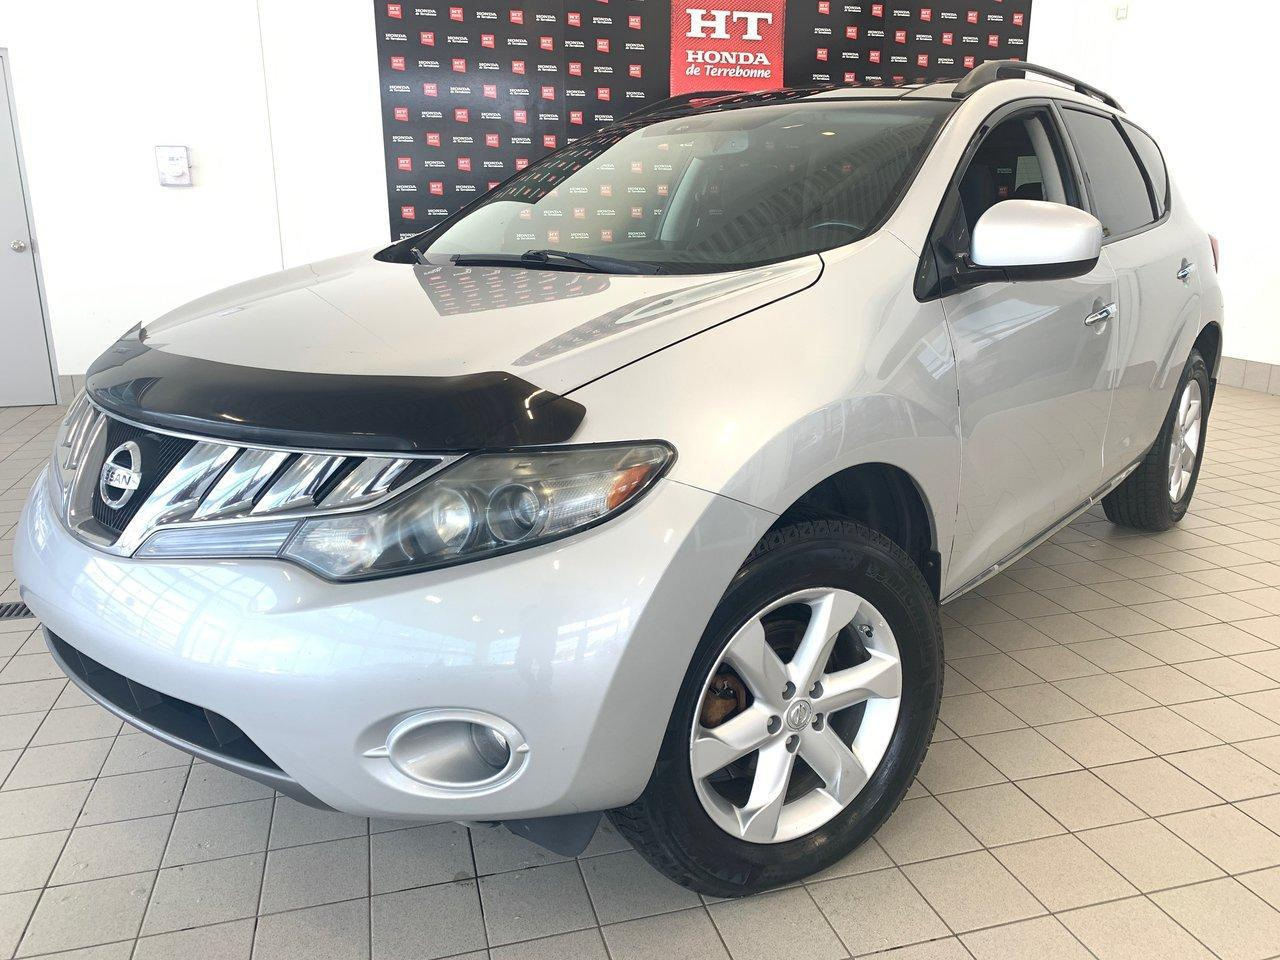 used 2009 nissan murano sl achat comptant for sale in terrebonne, quebec carpages.ca